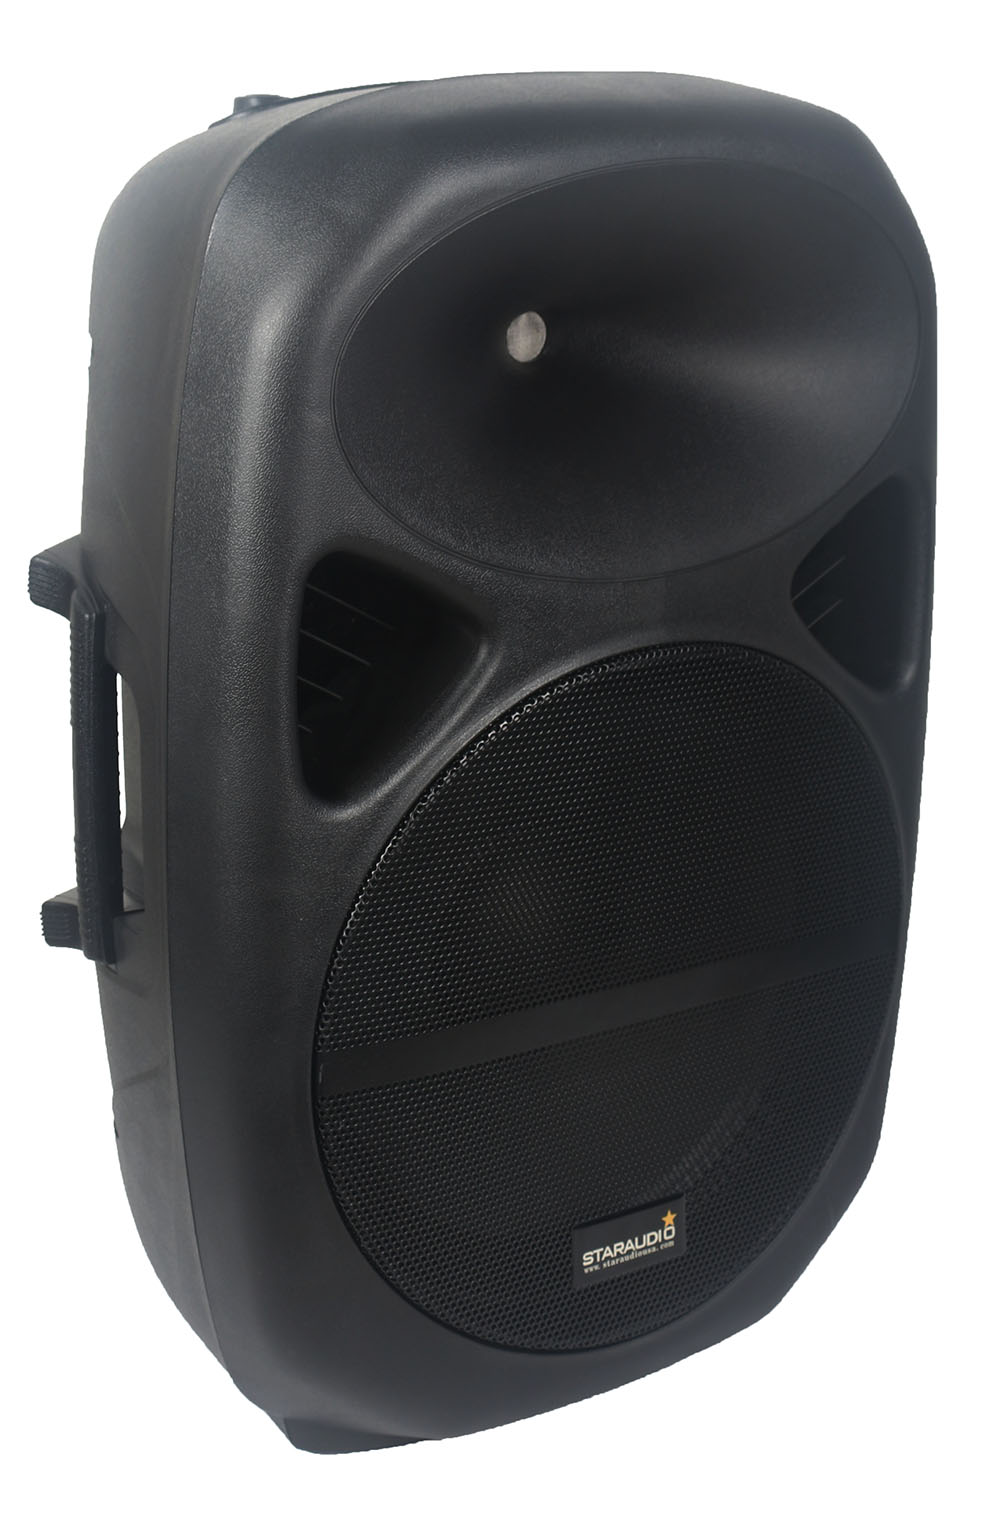 disco 15 2500w powered pa dj party speakers with bt sd card usb mp3 player for school play